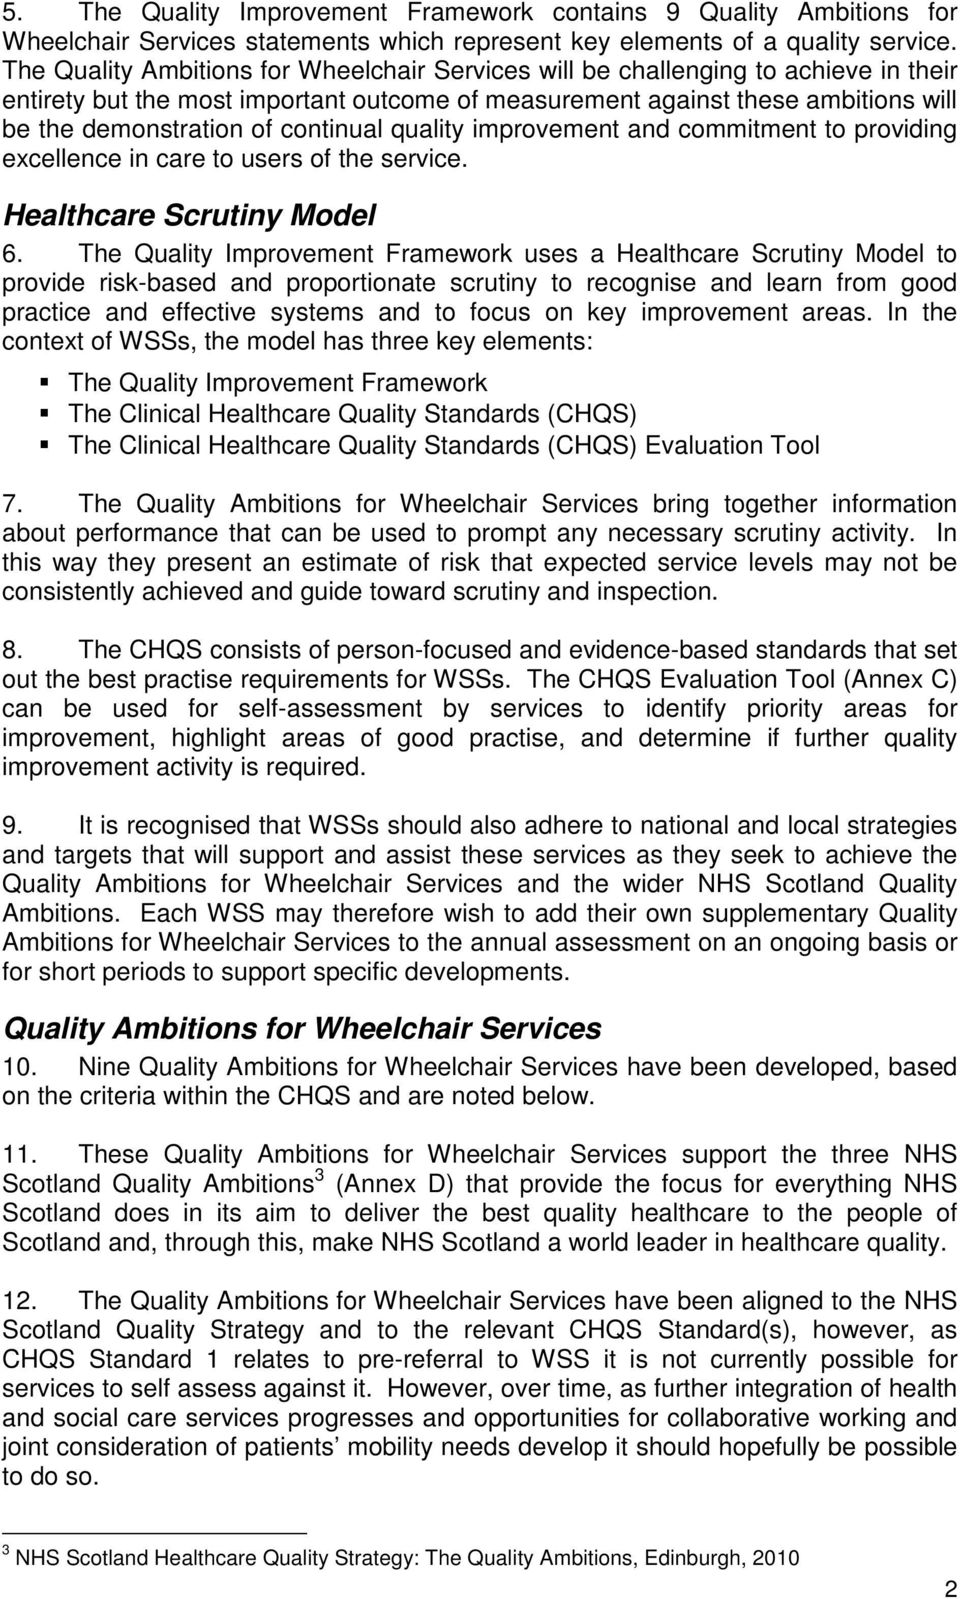 continual quality improvement and commitment to providing excellence in care to users of the service. Healthcare Scrutiny Model 6.